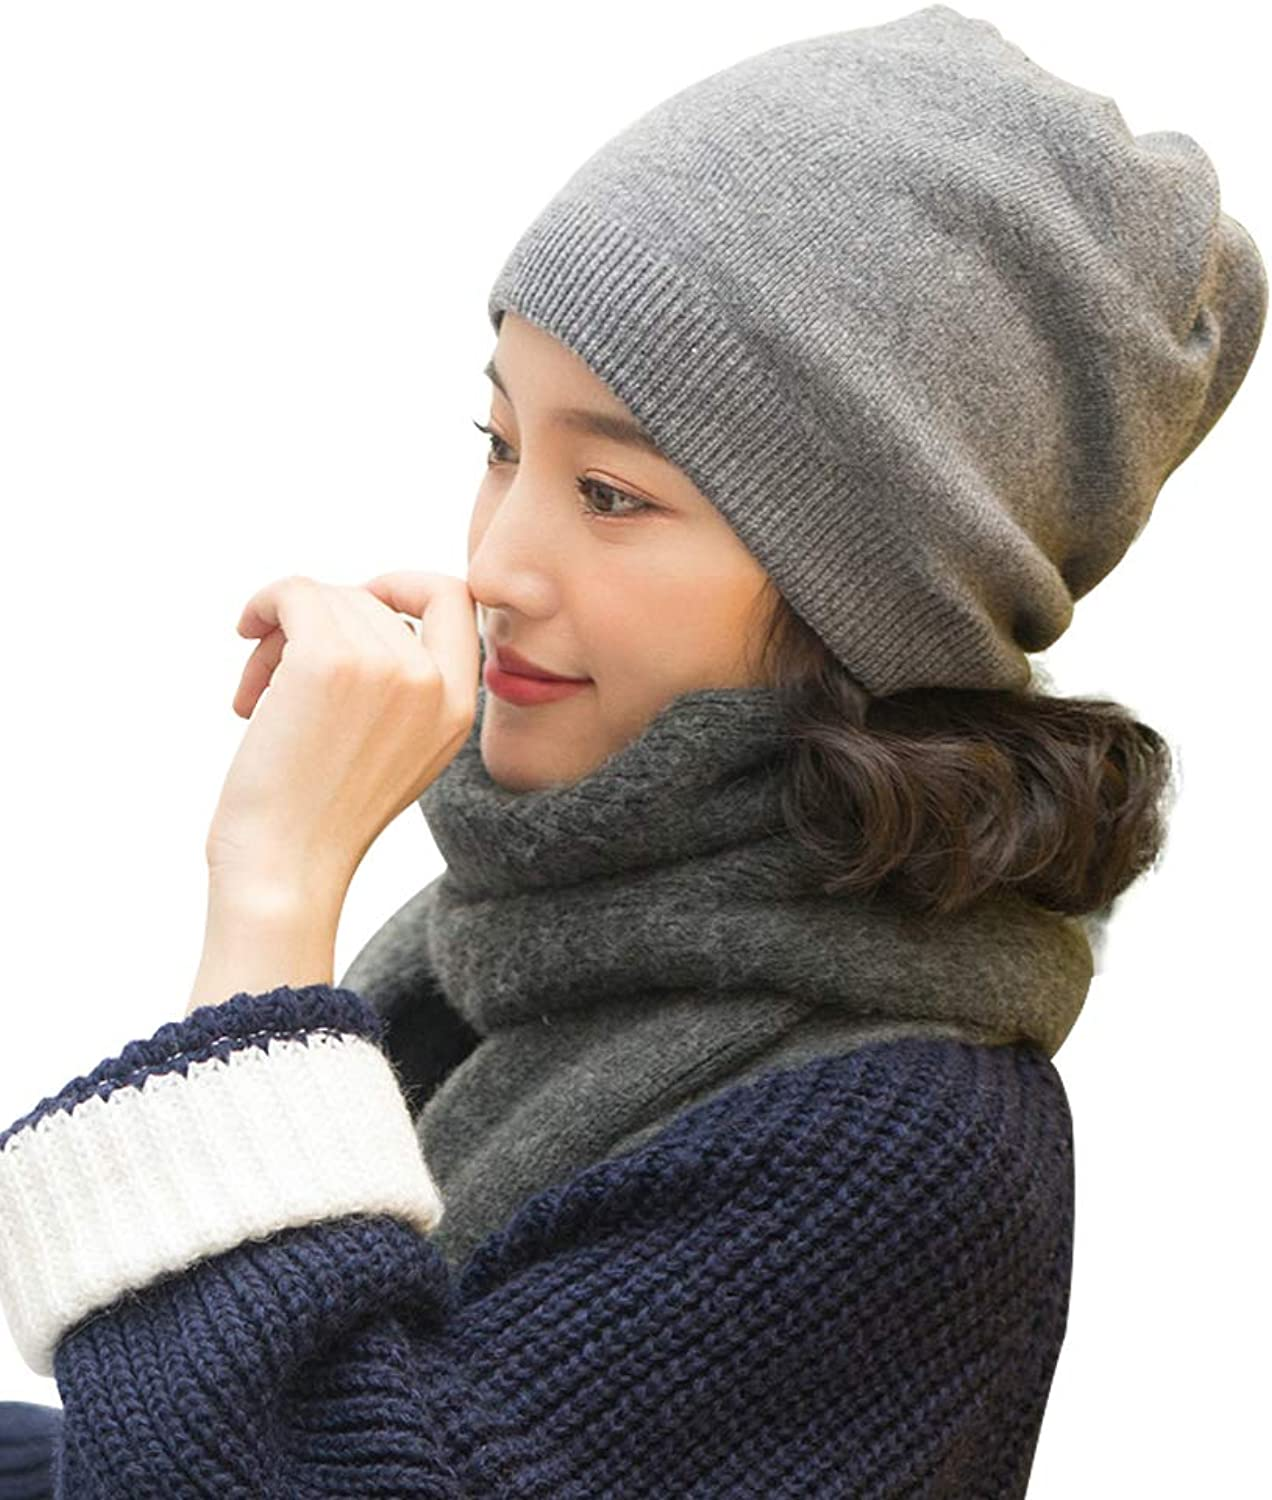 677888 Winter Hat for Women Autumn and Winter Knit Hat Female Empty Top Hiphop Wool Hat for Women with Ponytail